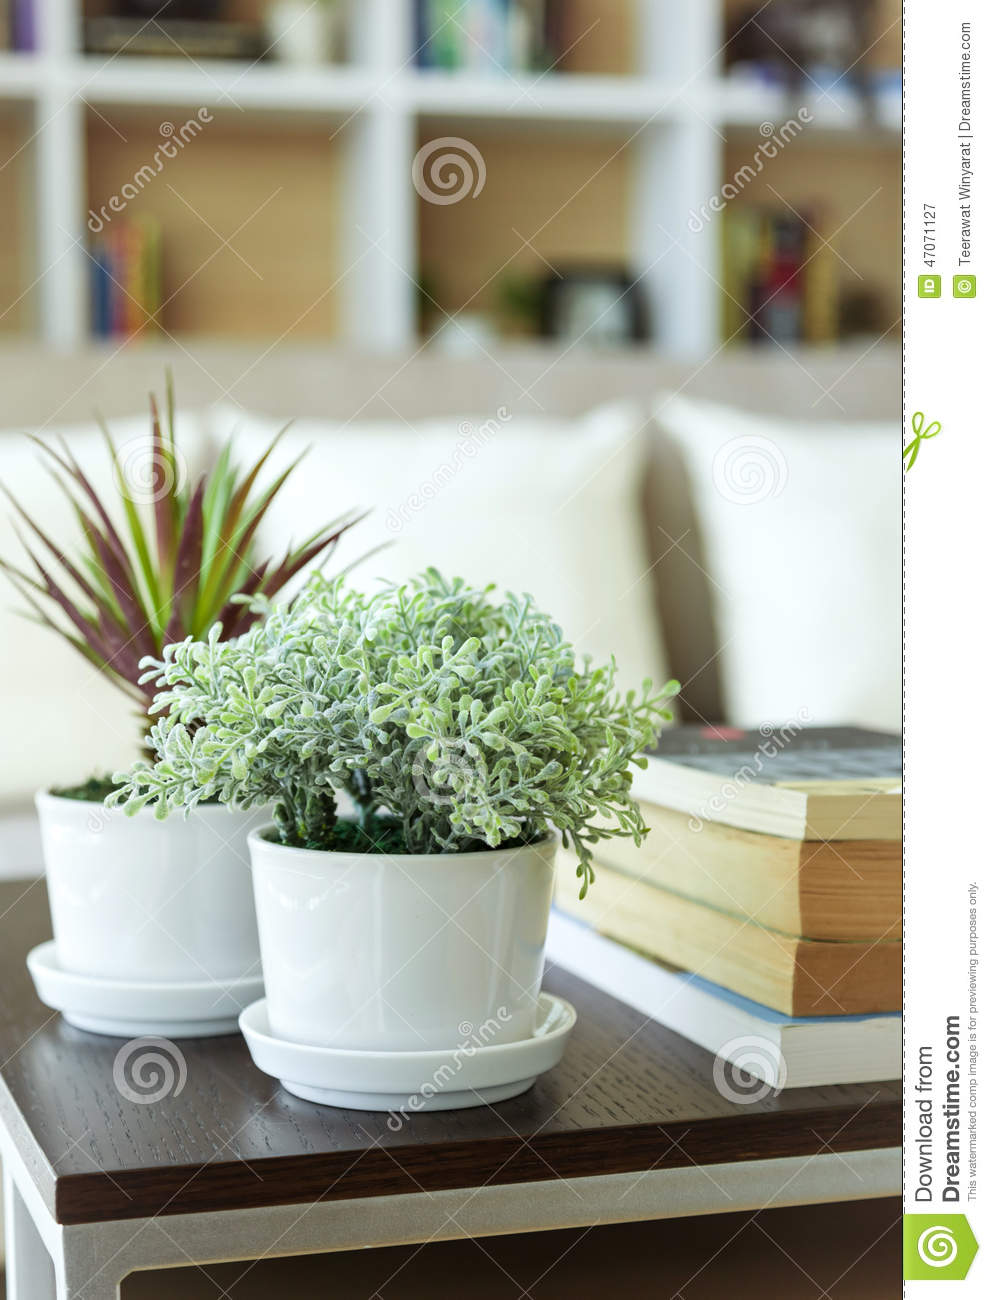 Plante verte sur la d coration de maison de table photo stock image 47071127 - Plantes vertes de maison ...